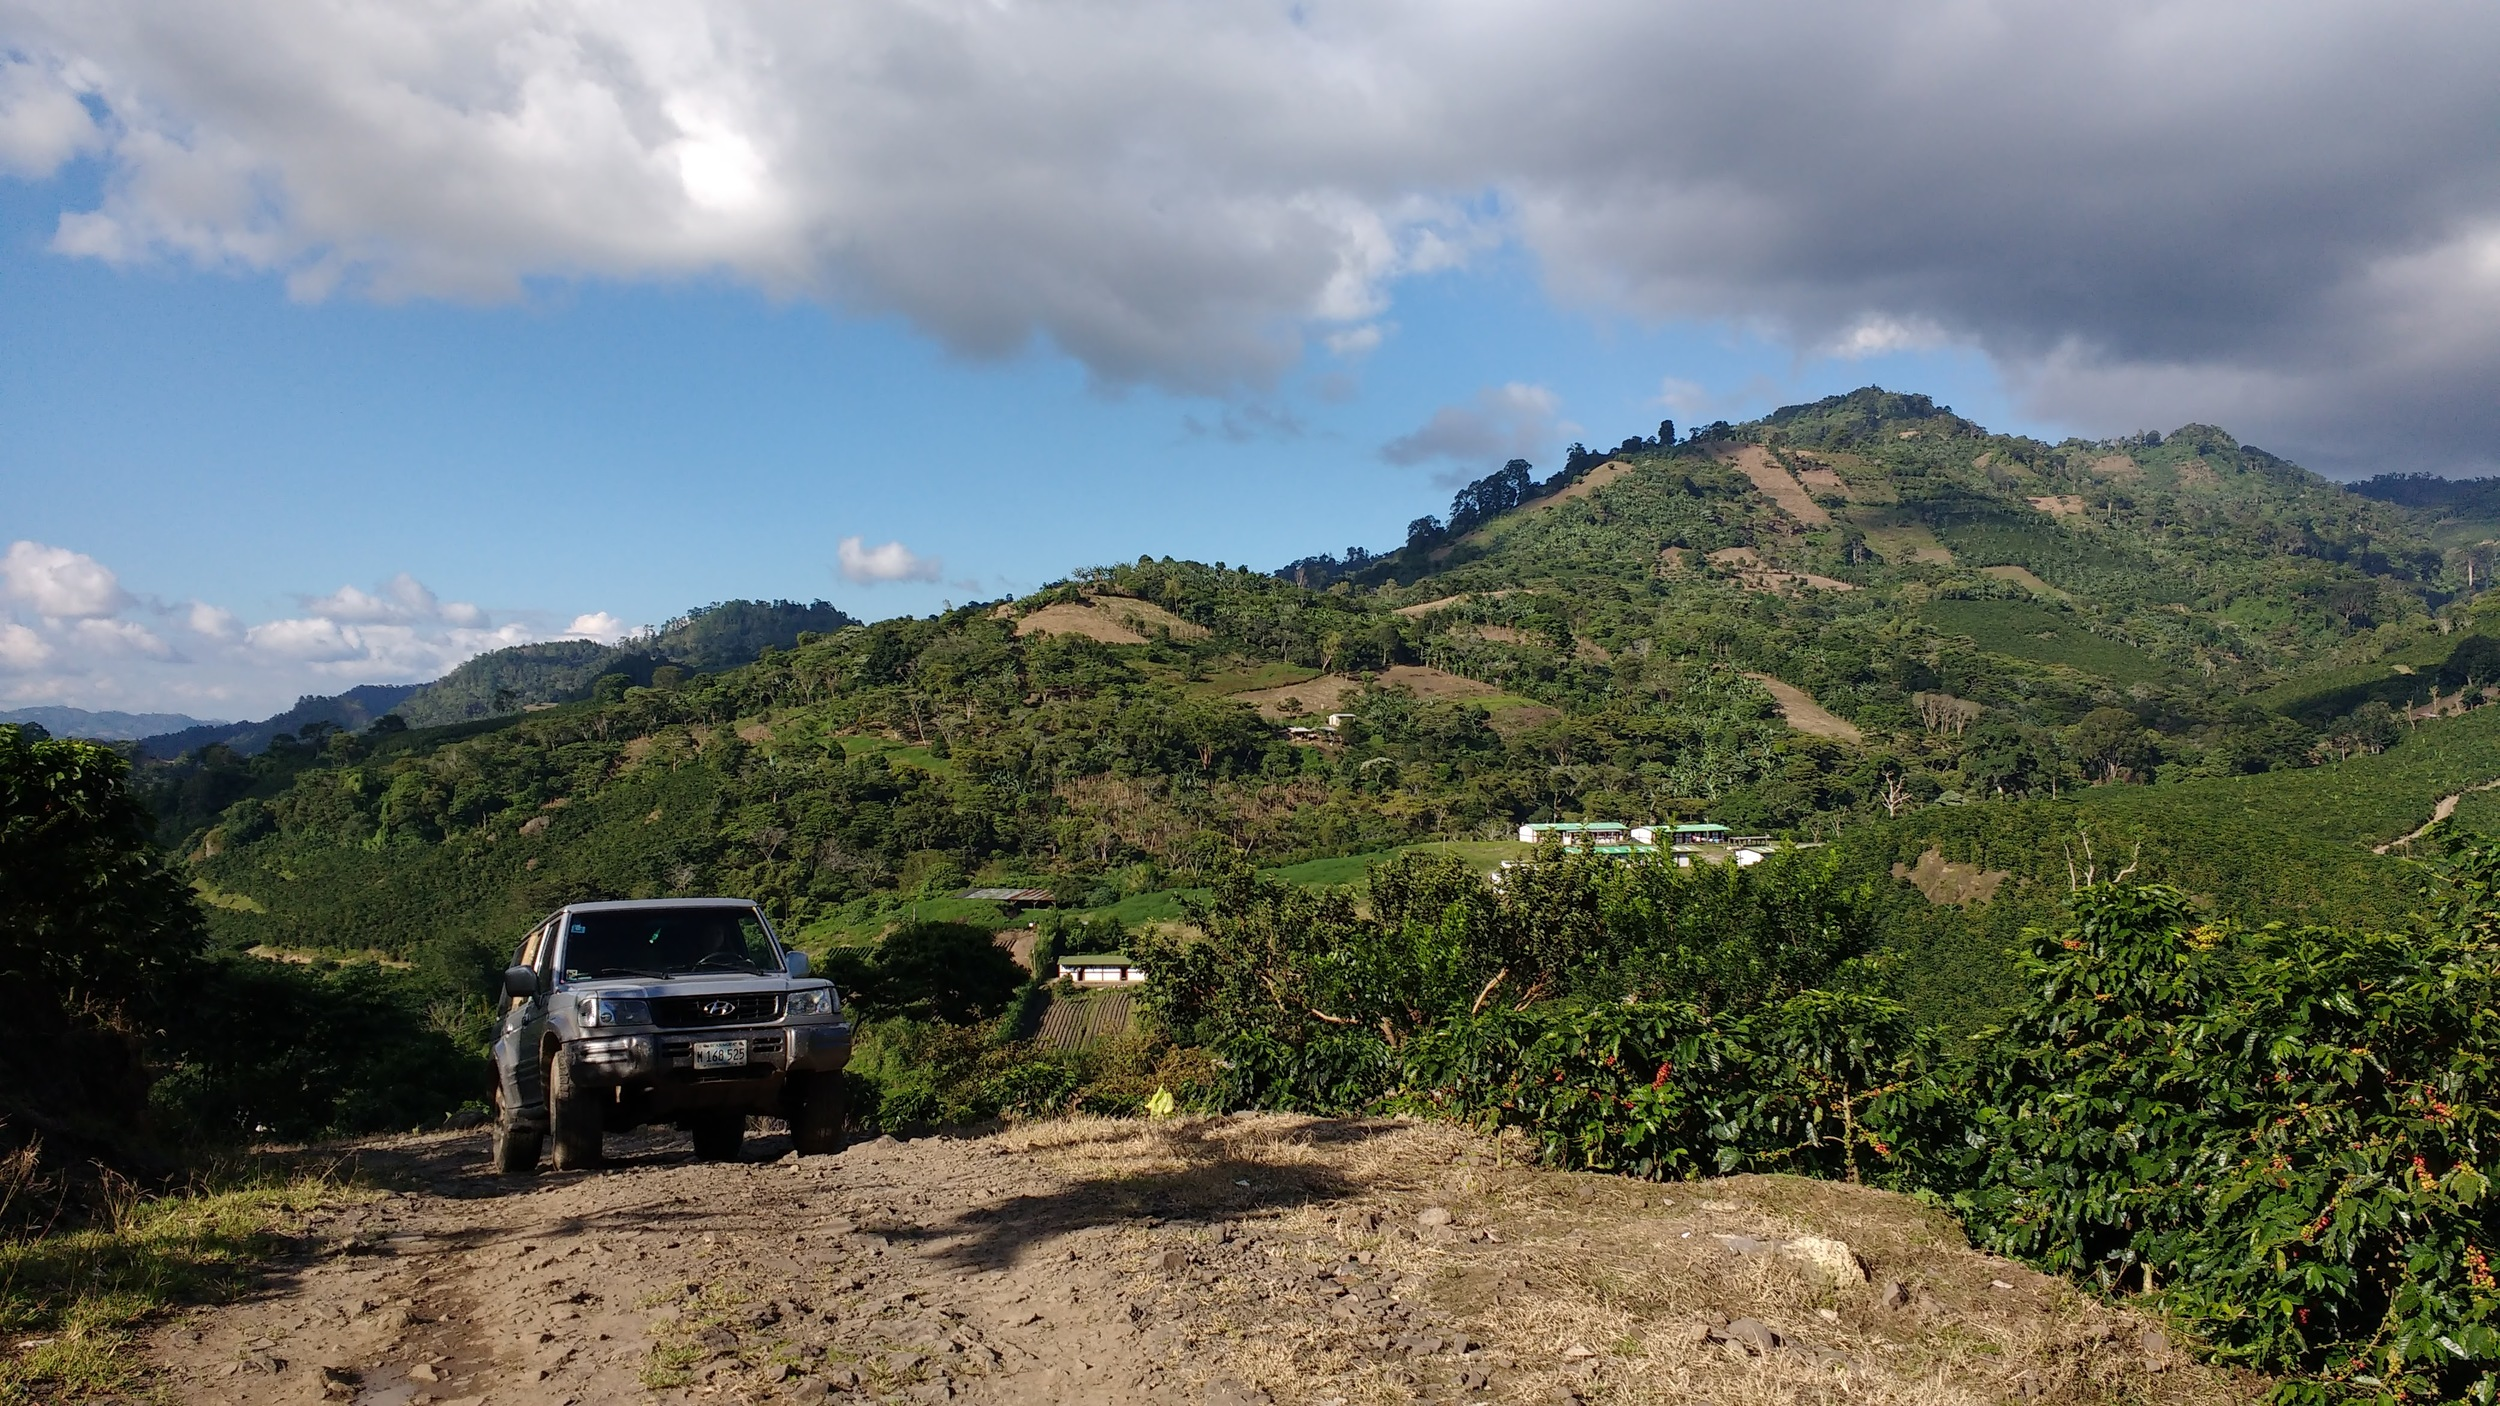 Large coffee farm near Colibrí Headquarters — Grid solutions are challenging in this terrain and aren't necessarily the best option.